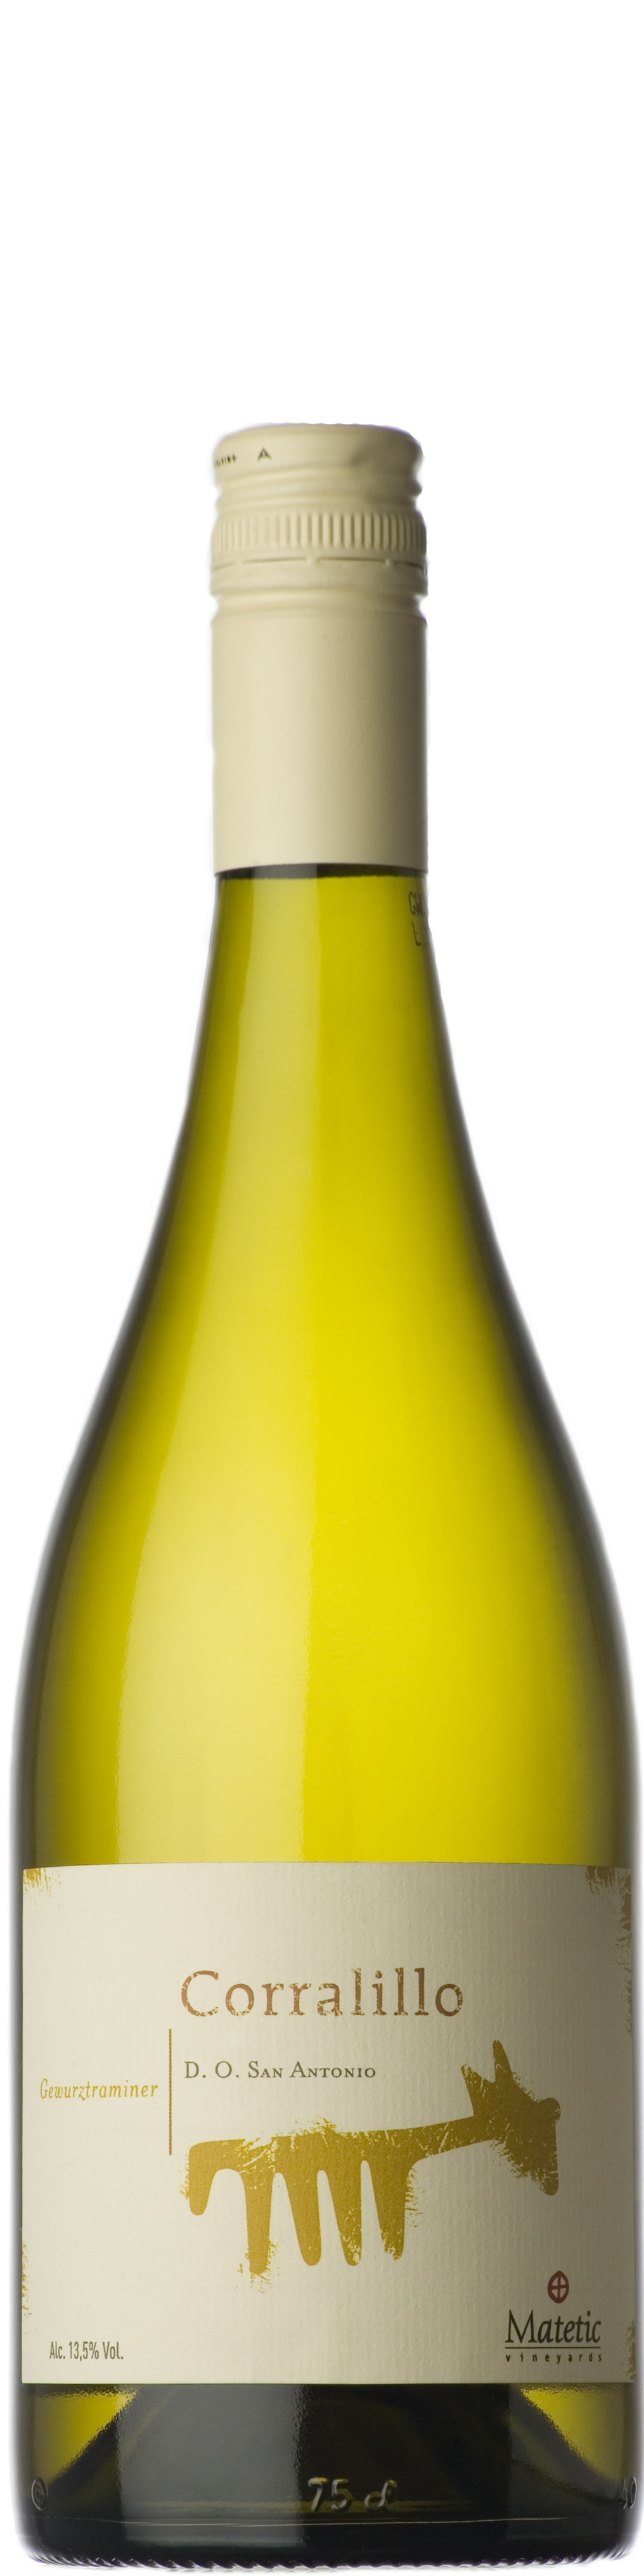 Image of product Corralillo Gewurztraminer